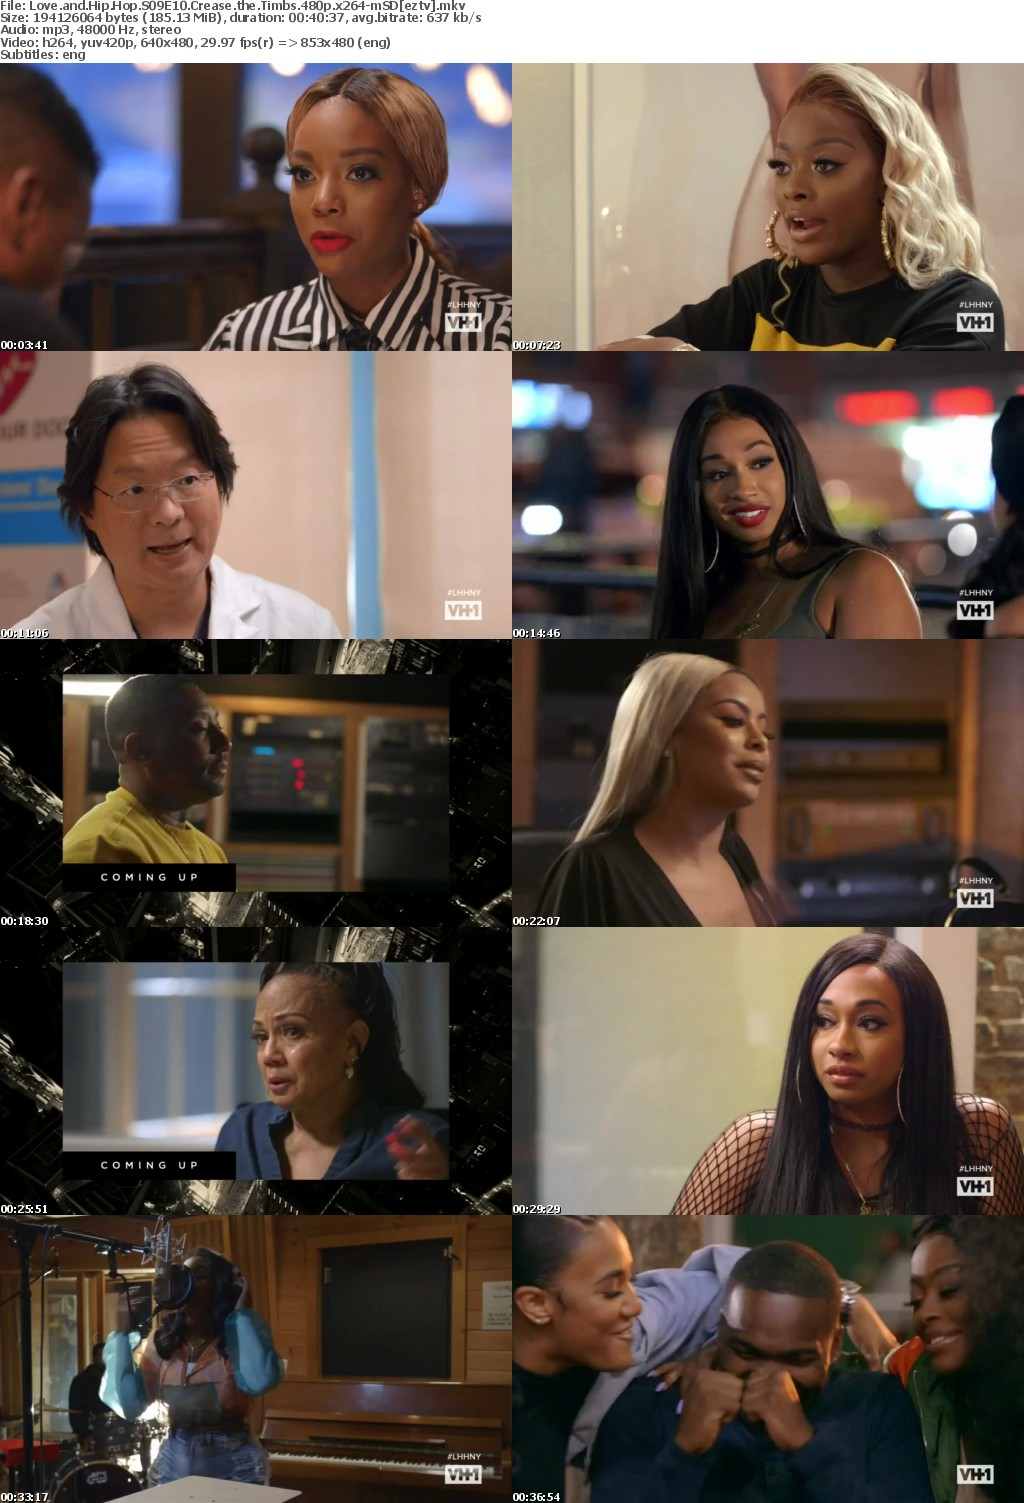 Love and Hip Hop S09E10 Crease the Timbs 480p x264-mSD